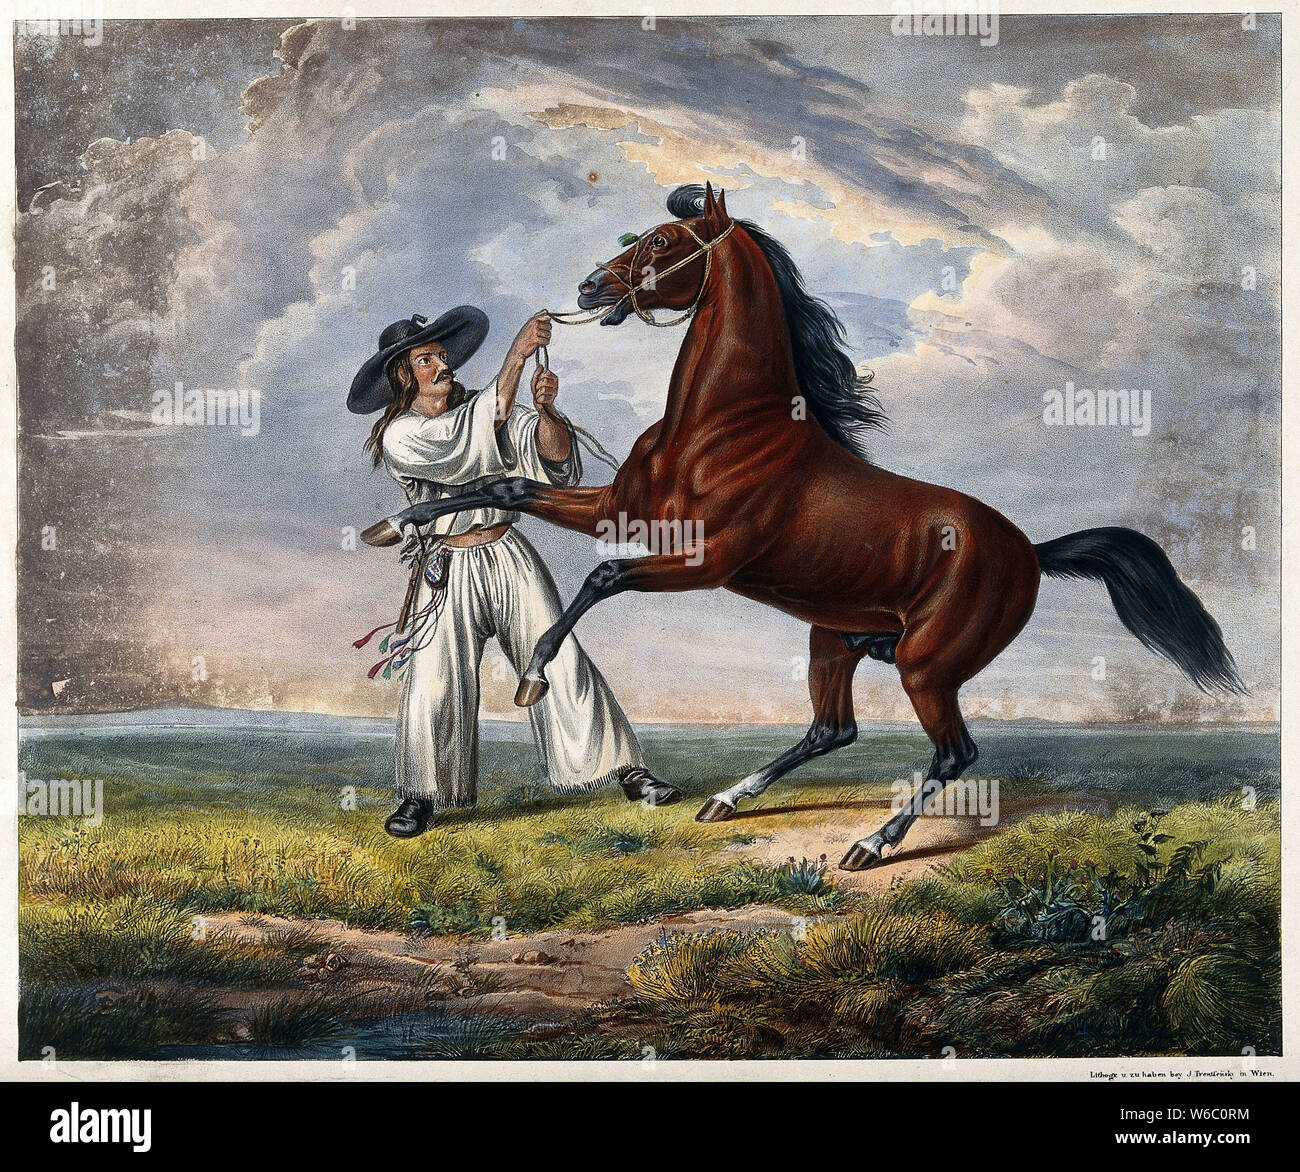 A man in white dress with a large brimmed black hat is holding a rearing horse by its reins. Coloured lithograph. Stock Photo